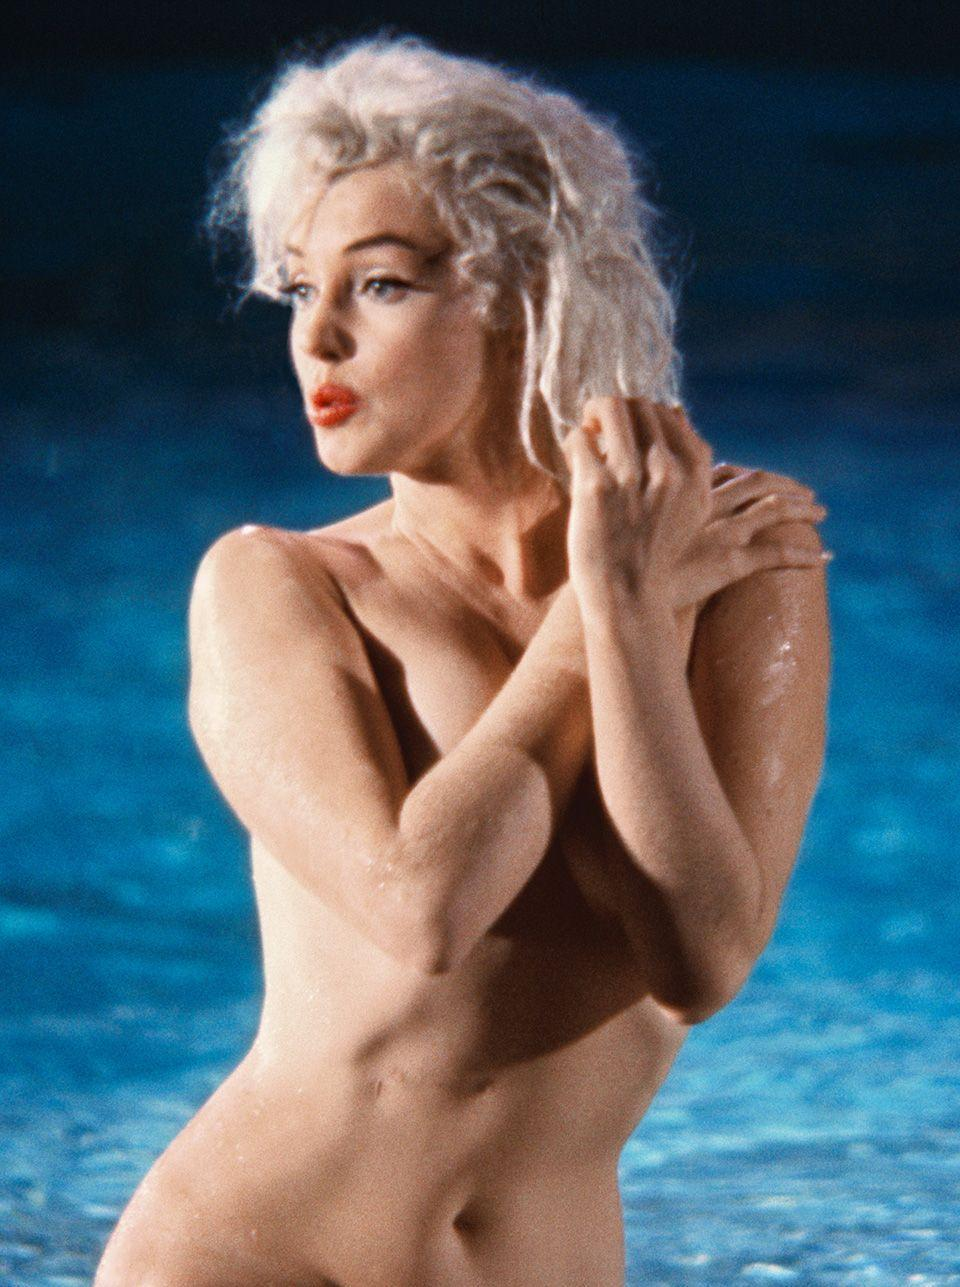 """<p>""""You're already famous, now you're going to make me famous,"""" Schiller said to Marilyn Monroe on the set of Something's Got to Give.</p>"""